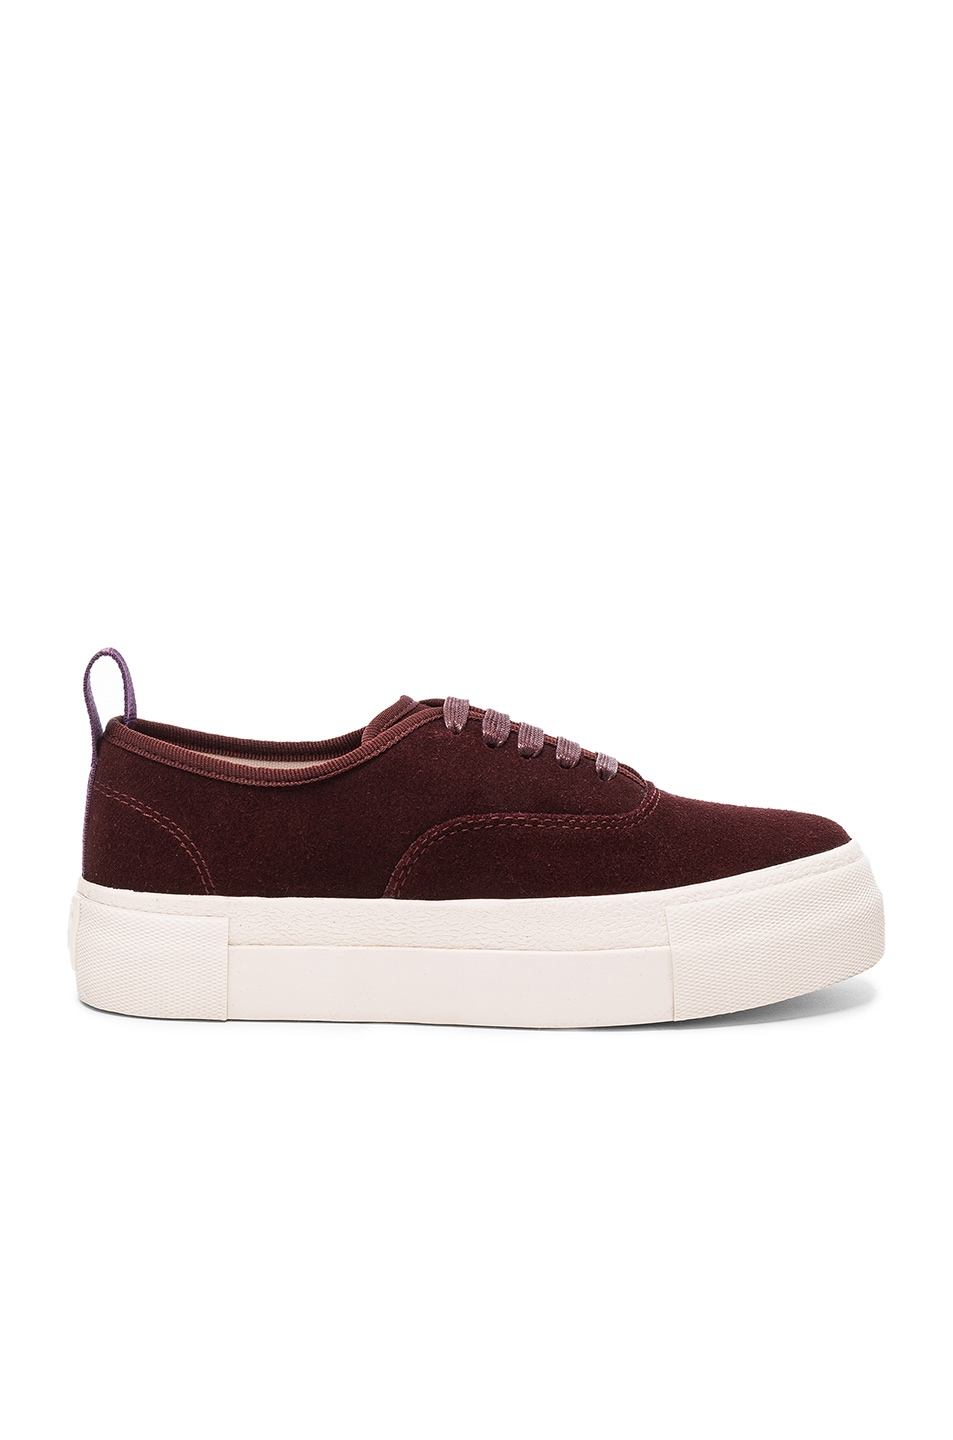 Image 1 of Eytys Suede Mother Sneakers in Oxblood